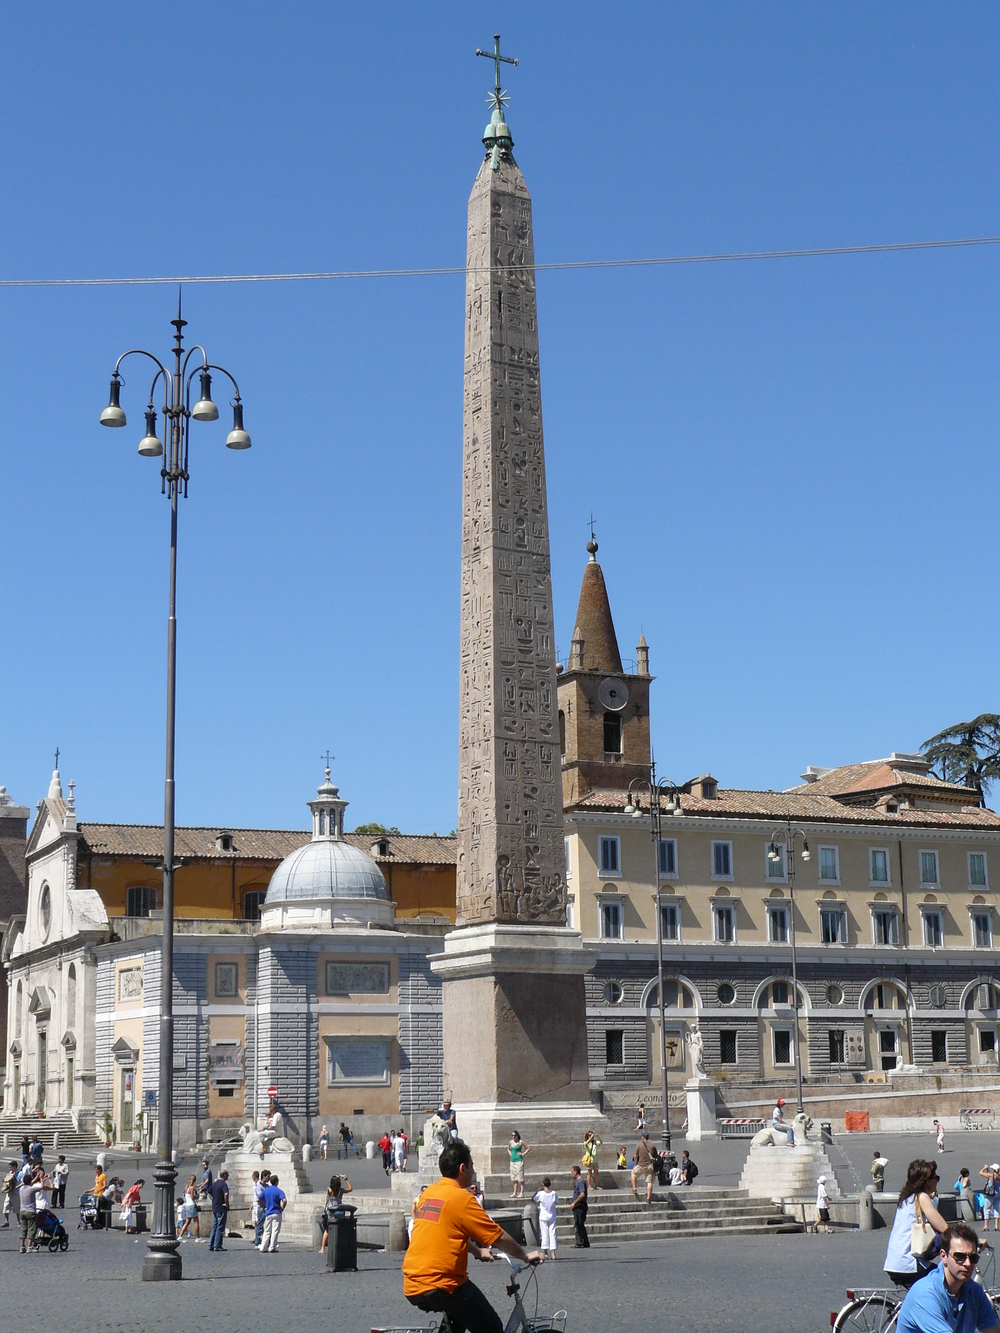 The Obelisk of Rameses II. In 30 BC Augustus brought it to Rome where it was put at the center of Cirus Maximus. In 1589 it was moved to the Piazza del Popolo. Where it stands today.